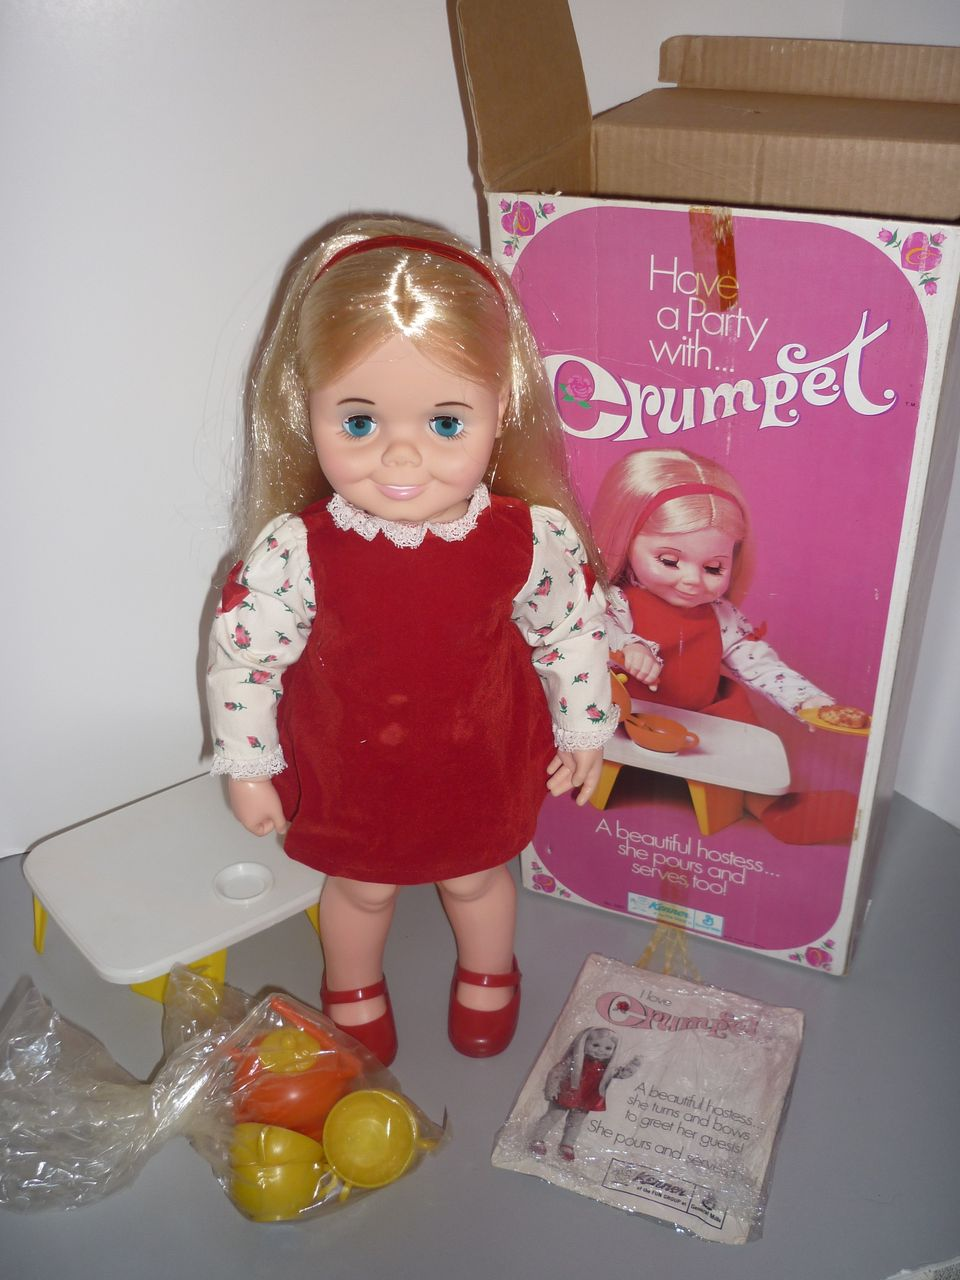 1971 Kenner Crumpet Doll-All Original Clothing, Box etc. Canadian Issue